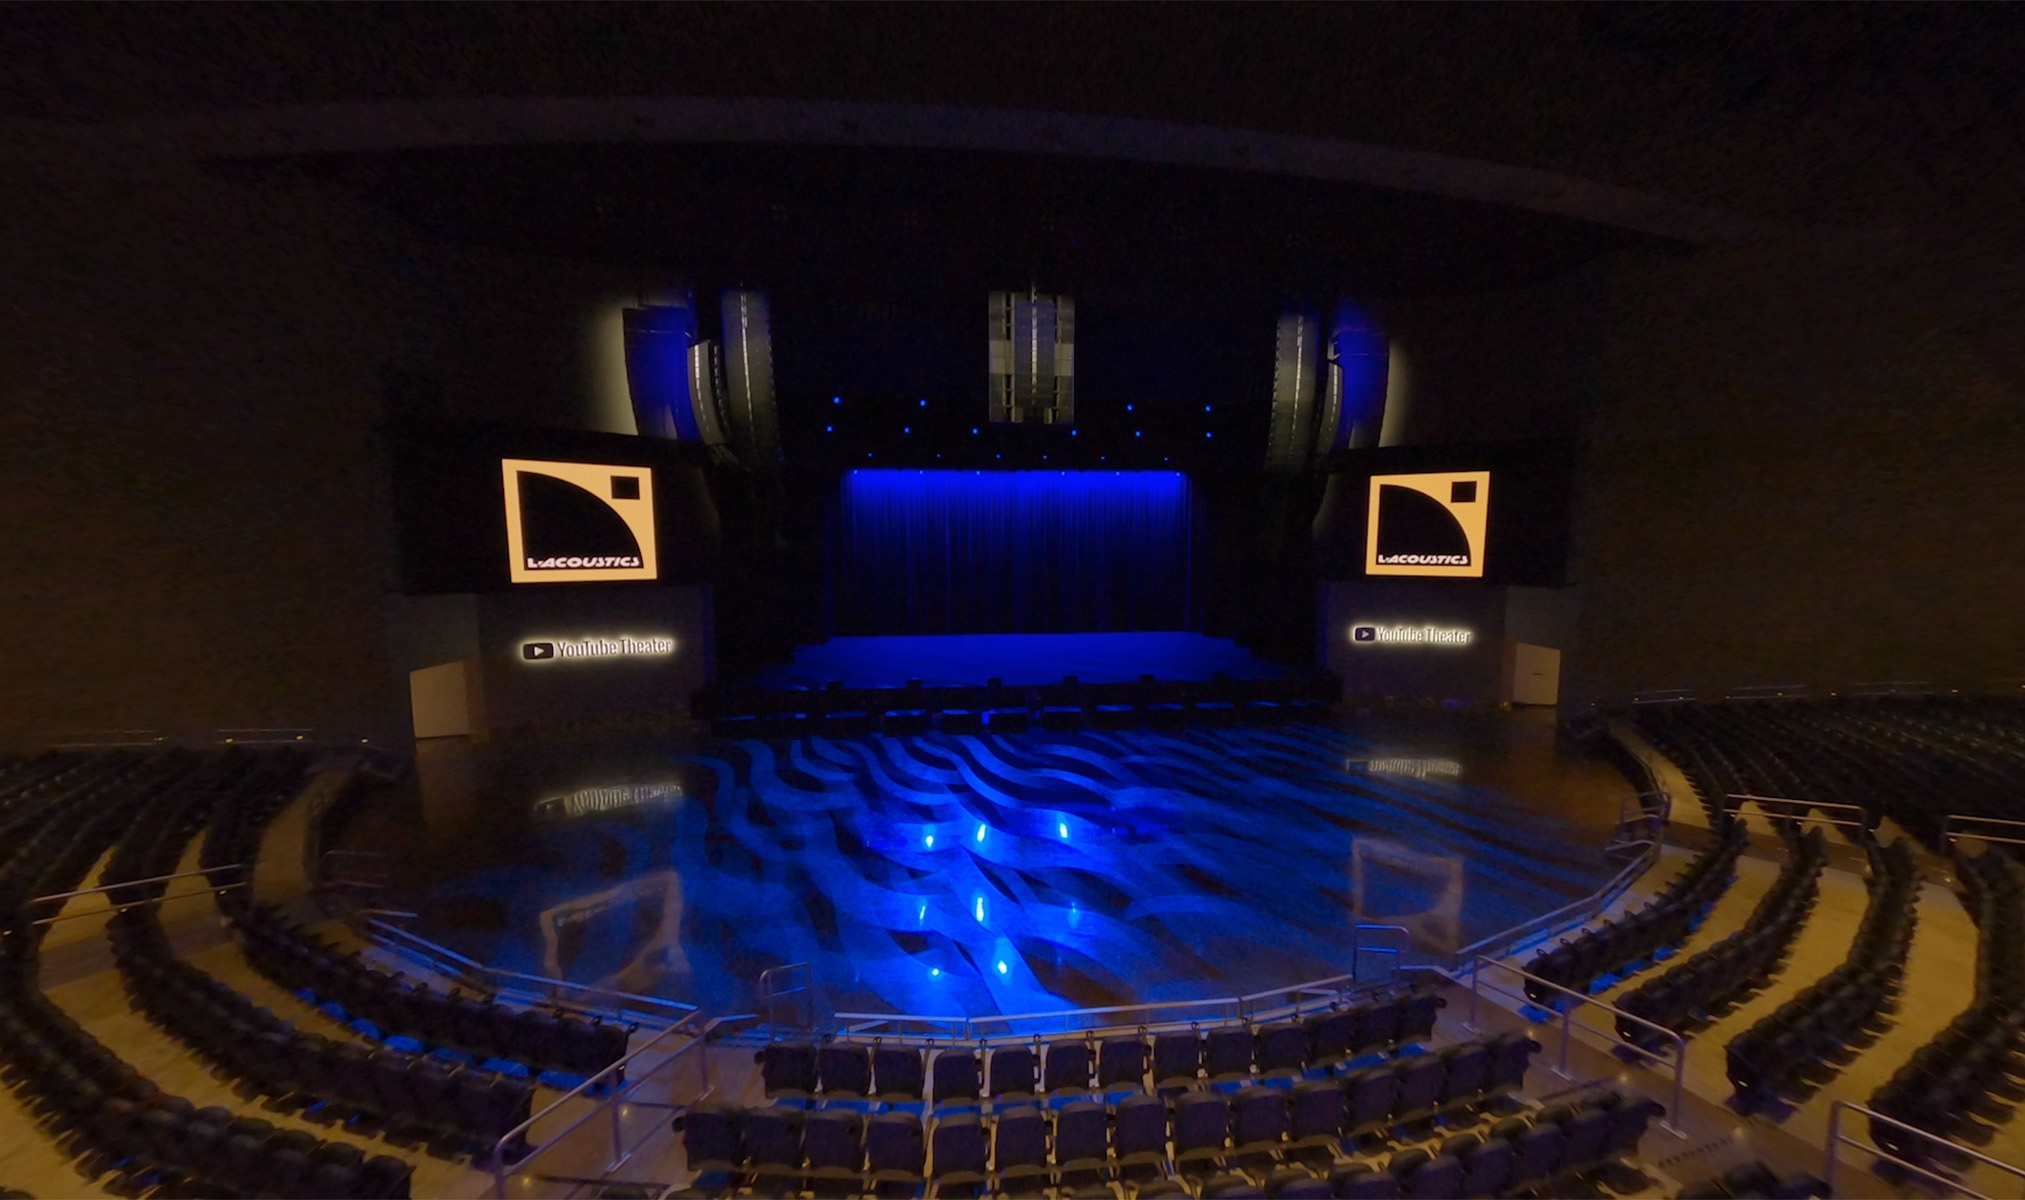 Newly Launched YouTube Theater Comes Embedded with L-Acoustics featured image